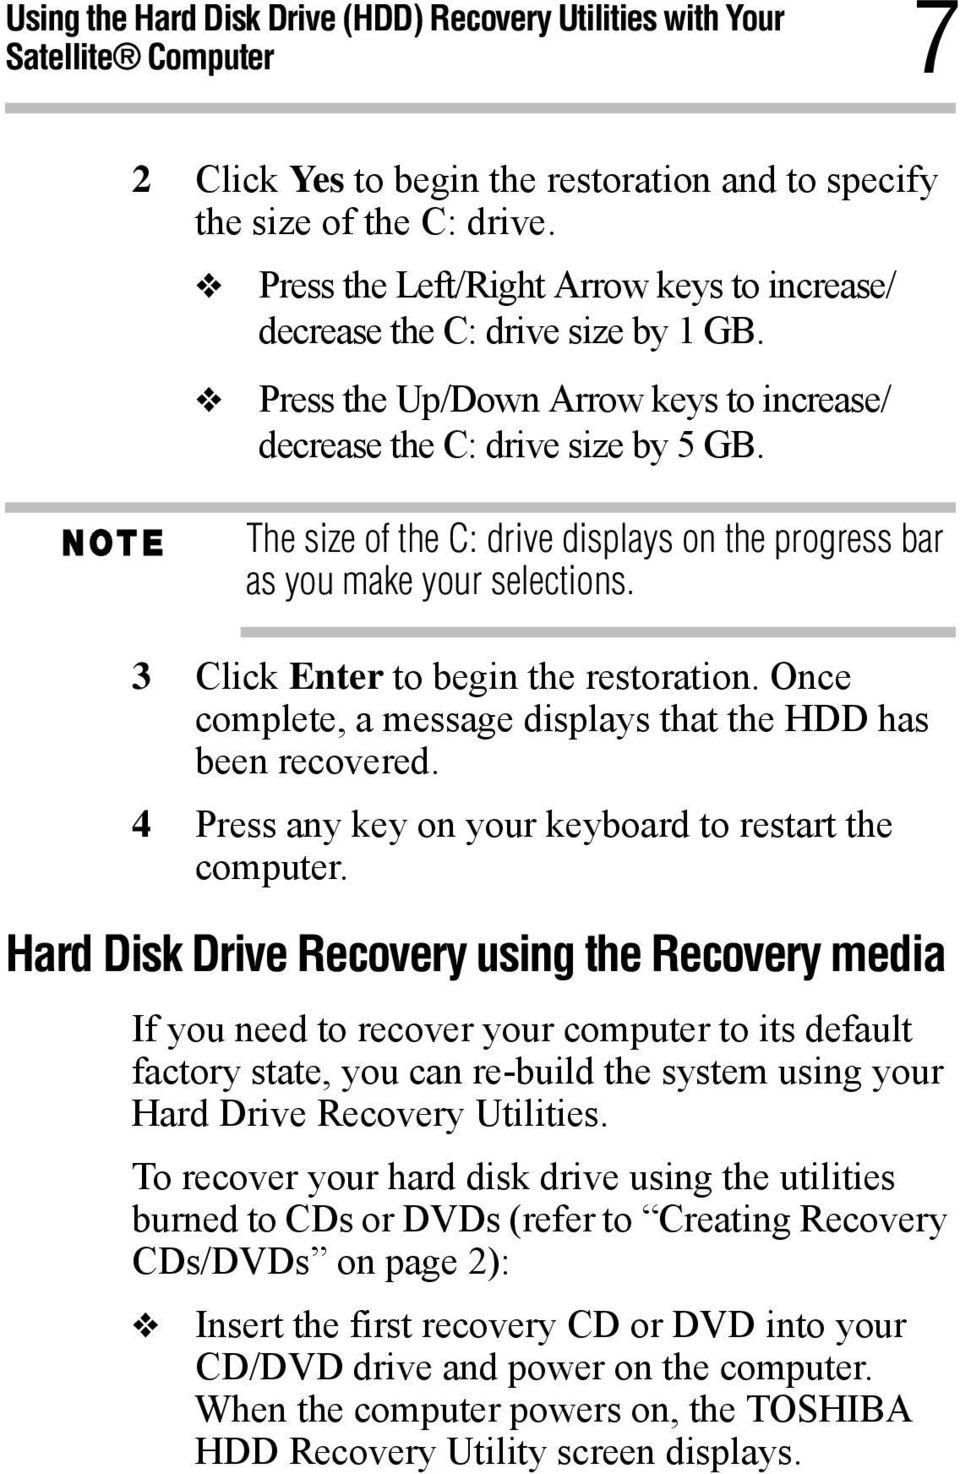 The size of the C: drive displays on the progress bar as you make your selections. 3 Click Enter to begin the restoration. Once complete, a message displays that the HDD has been recovered.